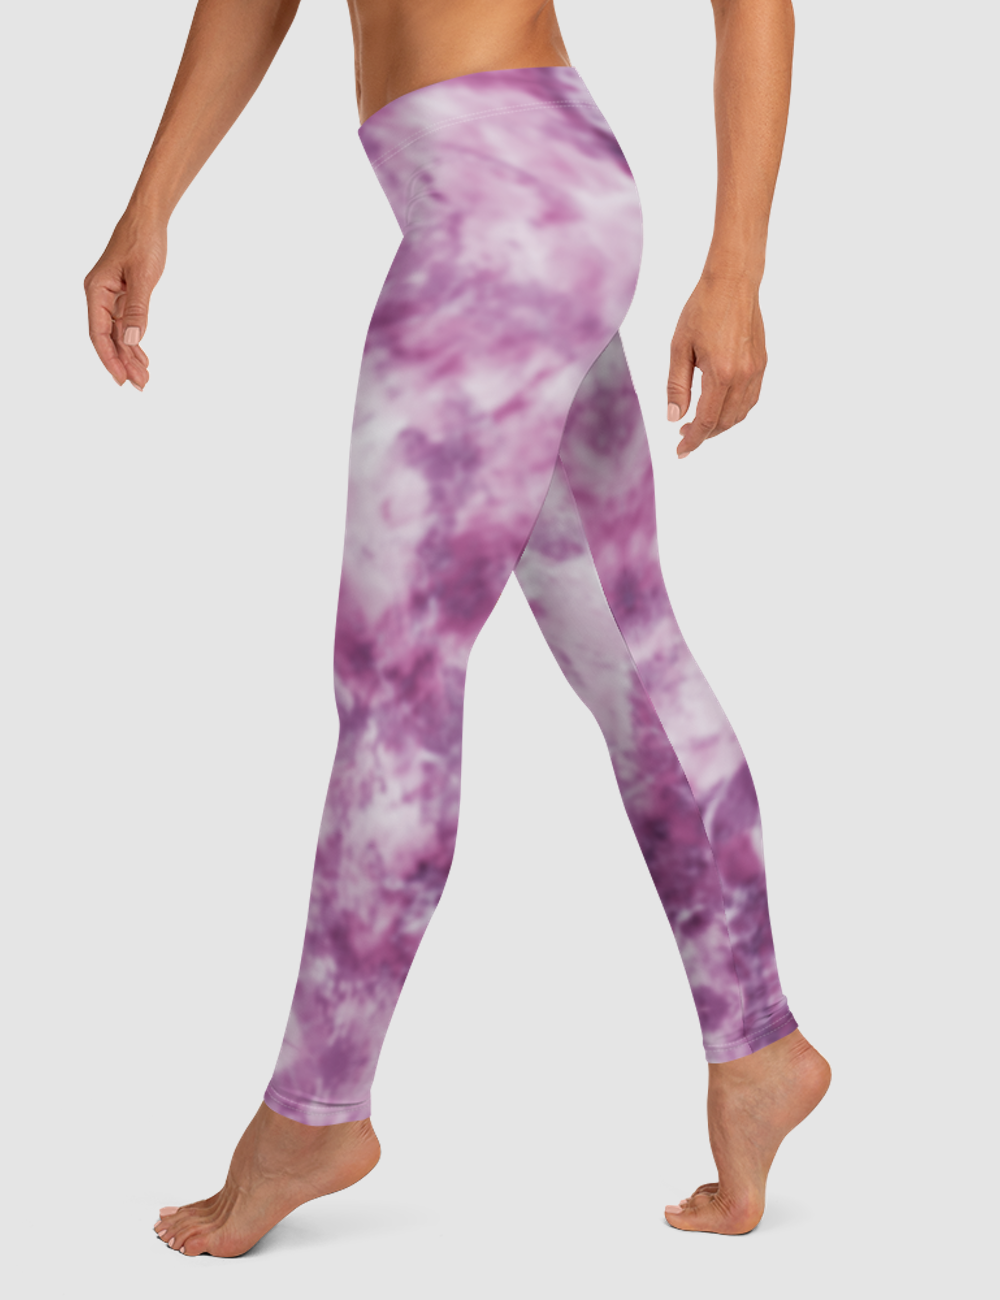 Faded Tie Dye | Women's Standard Yoga Leggings